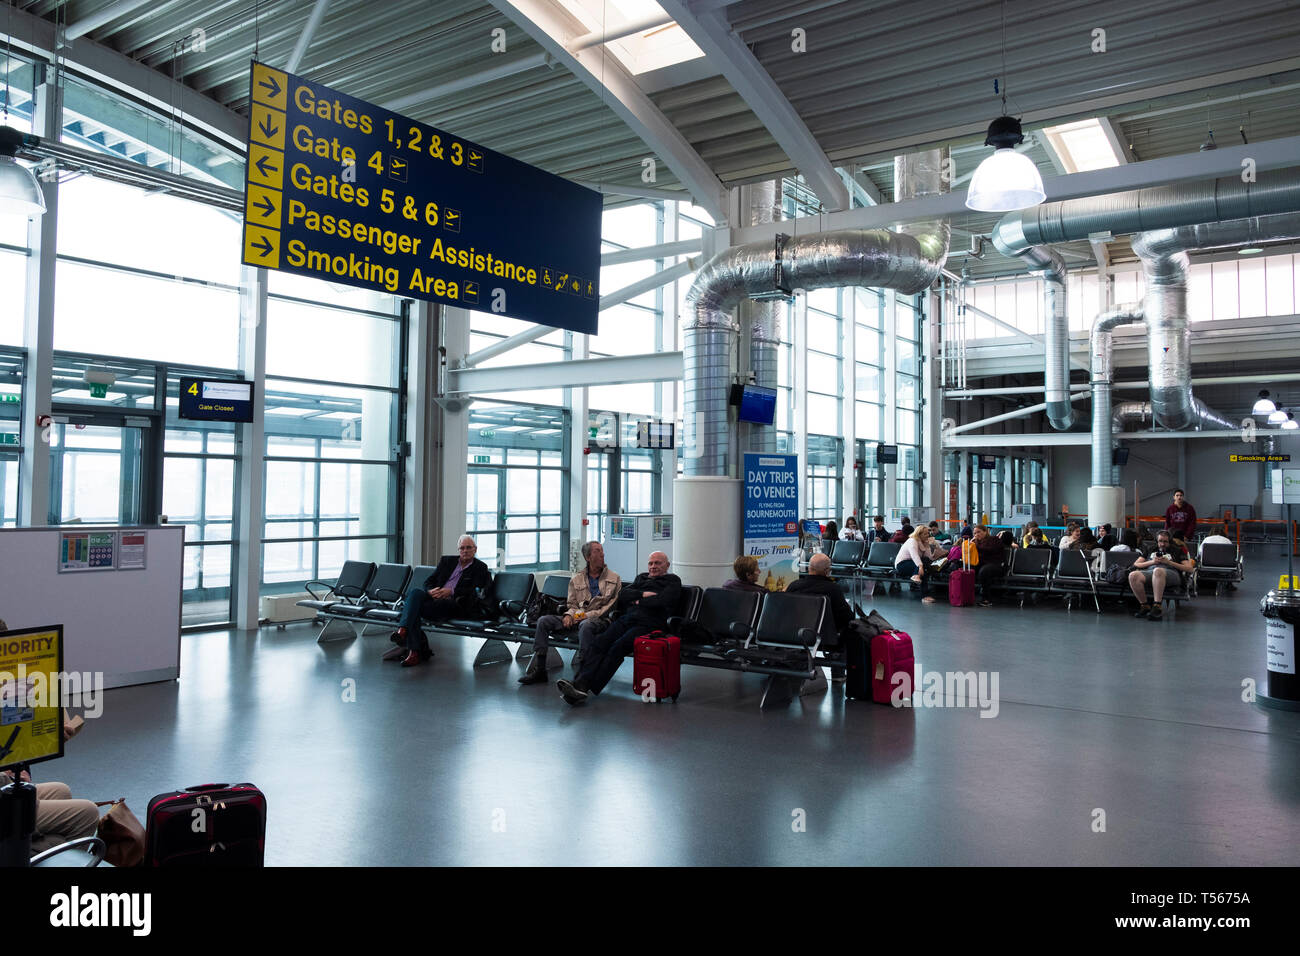 Passengers waiting in Bournemouth Airport departure hall interior with signs to gates Stock Photo